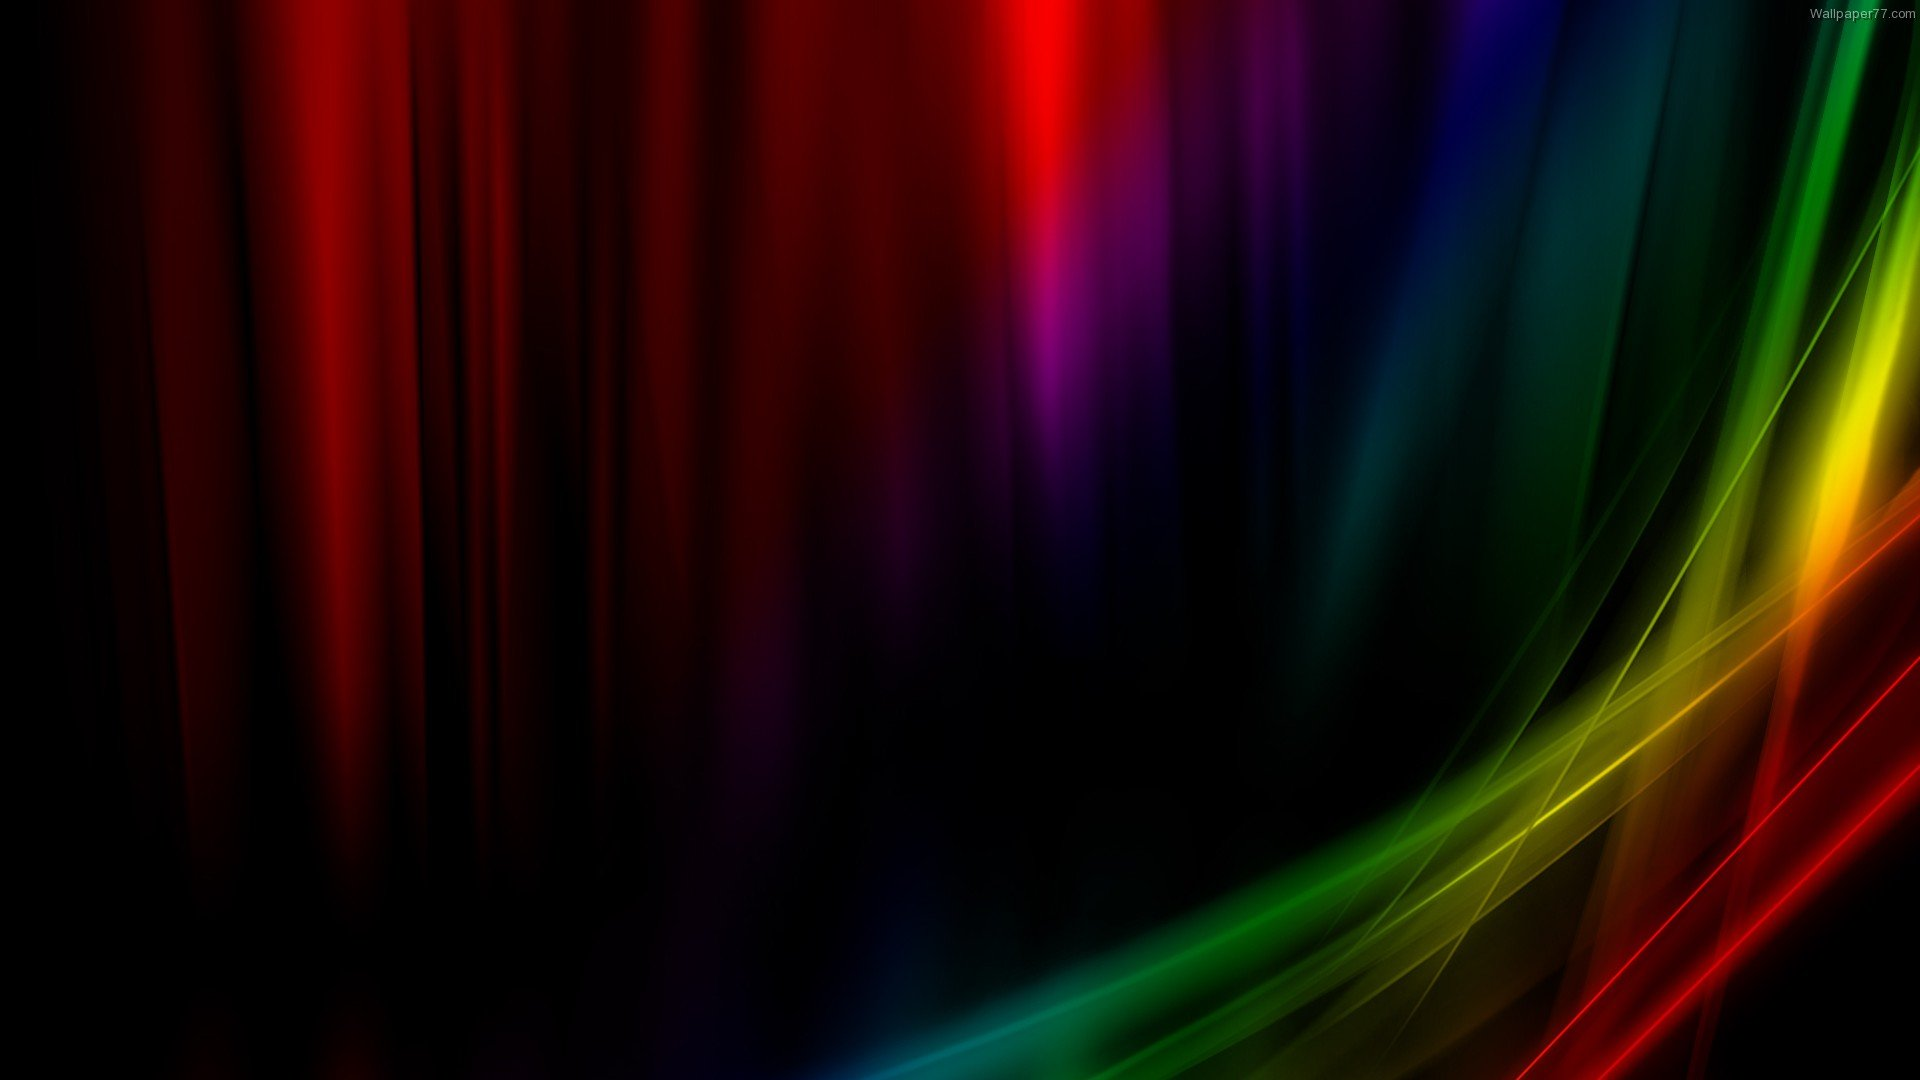 Windows red wallpapers and images wallpapers pictures photos 1920x1080 voltagebd Images